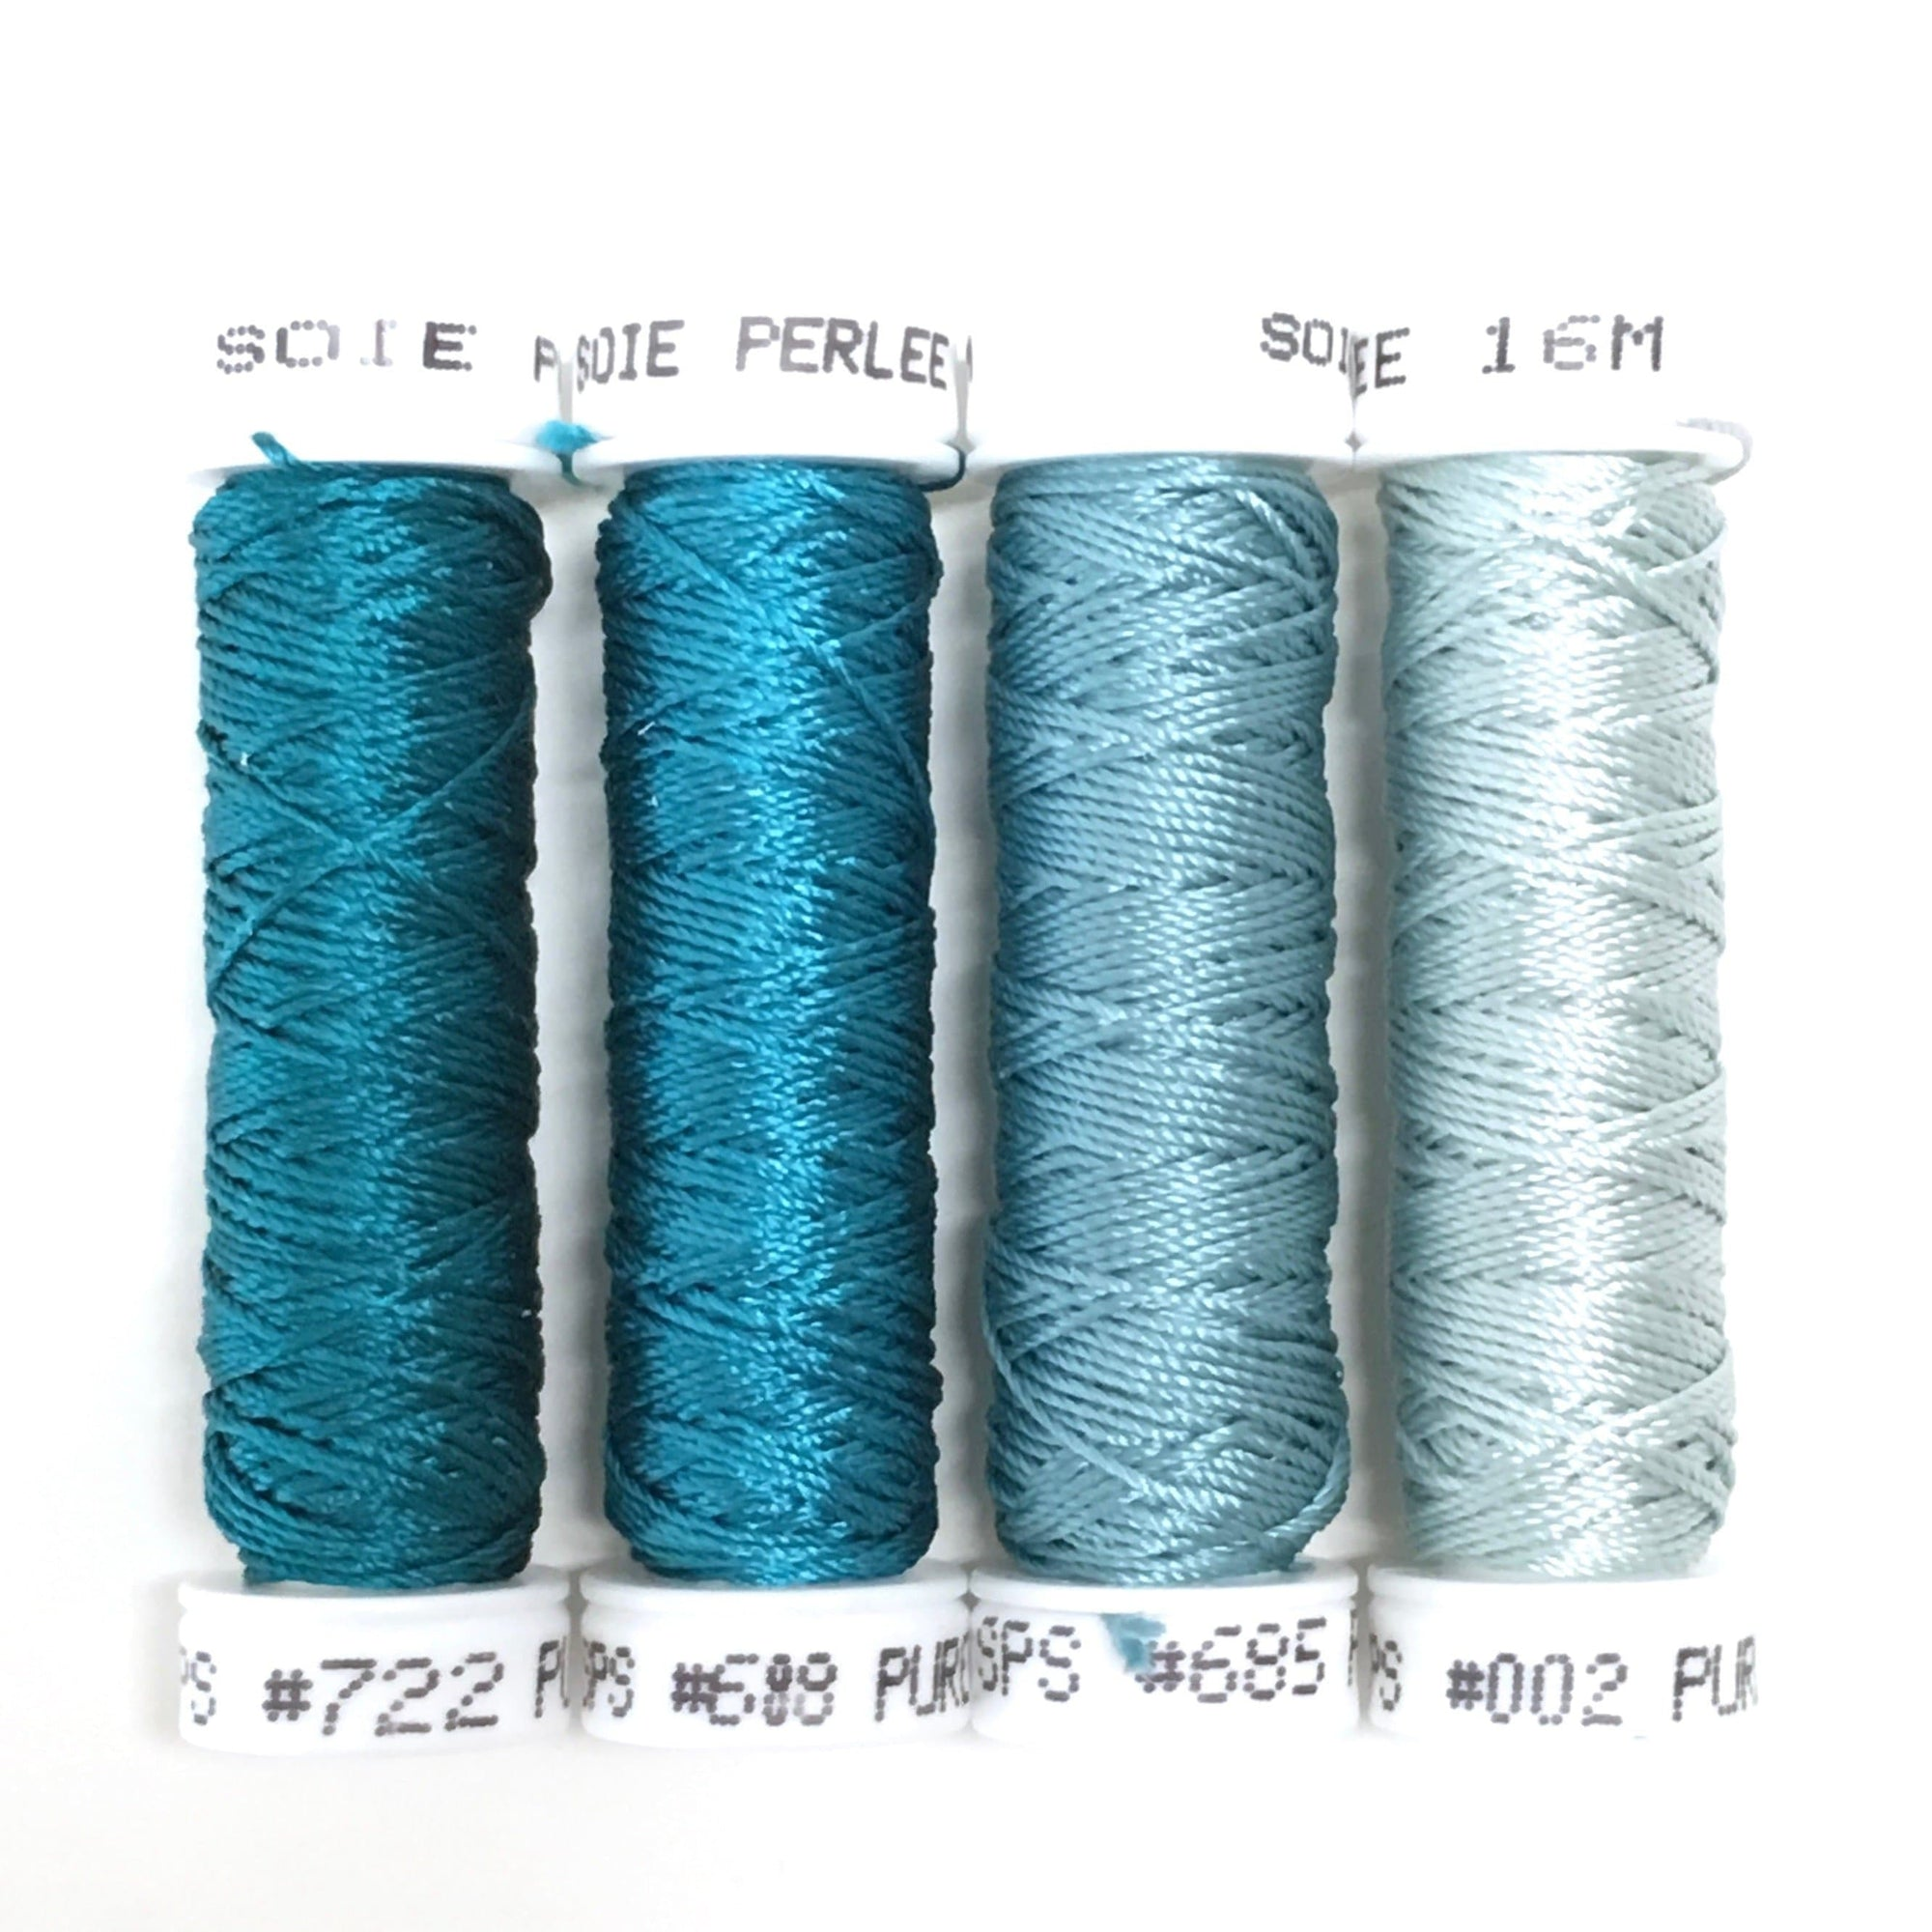 Turquoise Collection - Soie Perlee